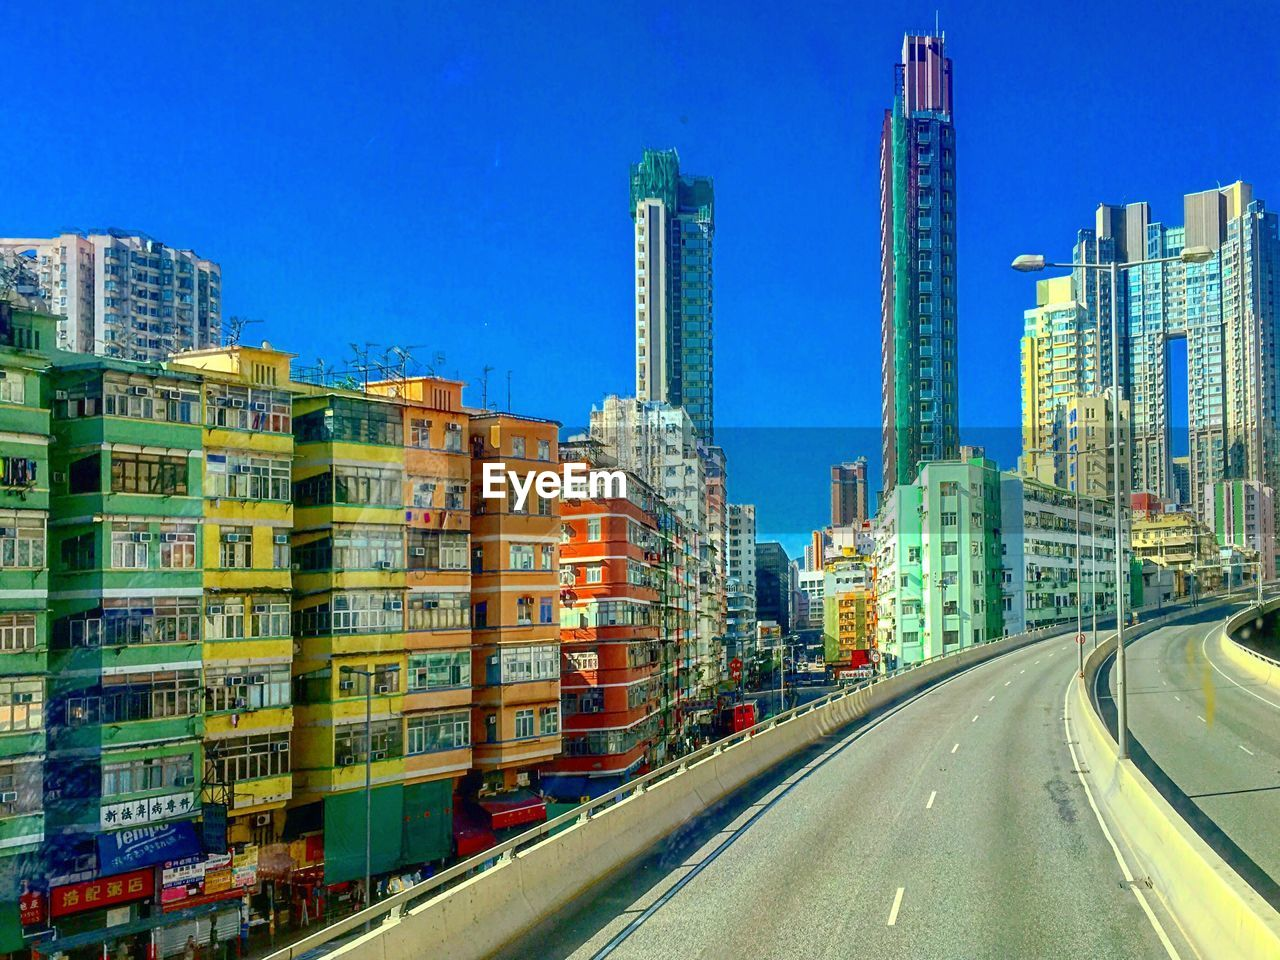 Overpass by colorful buildings against clear sky